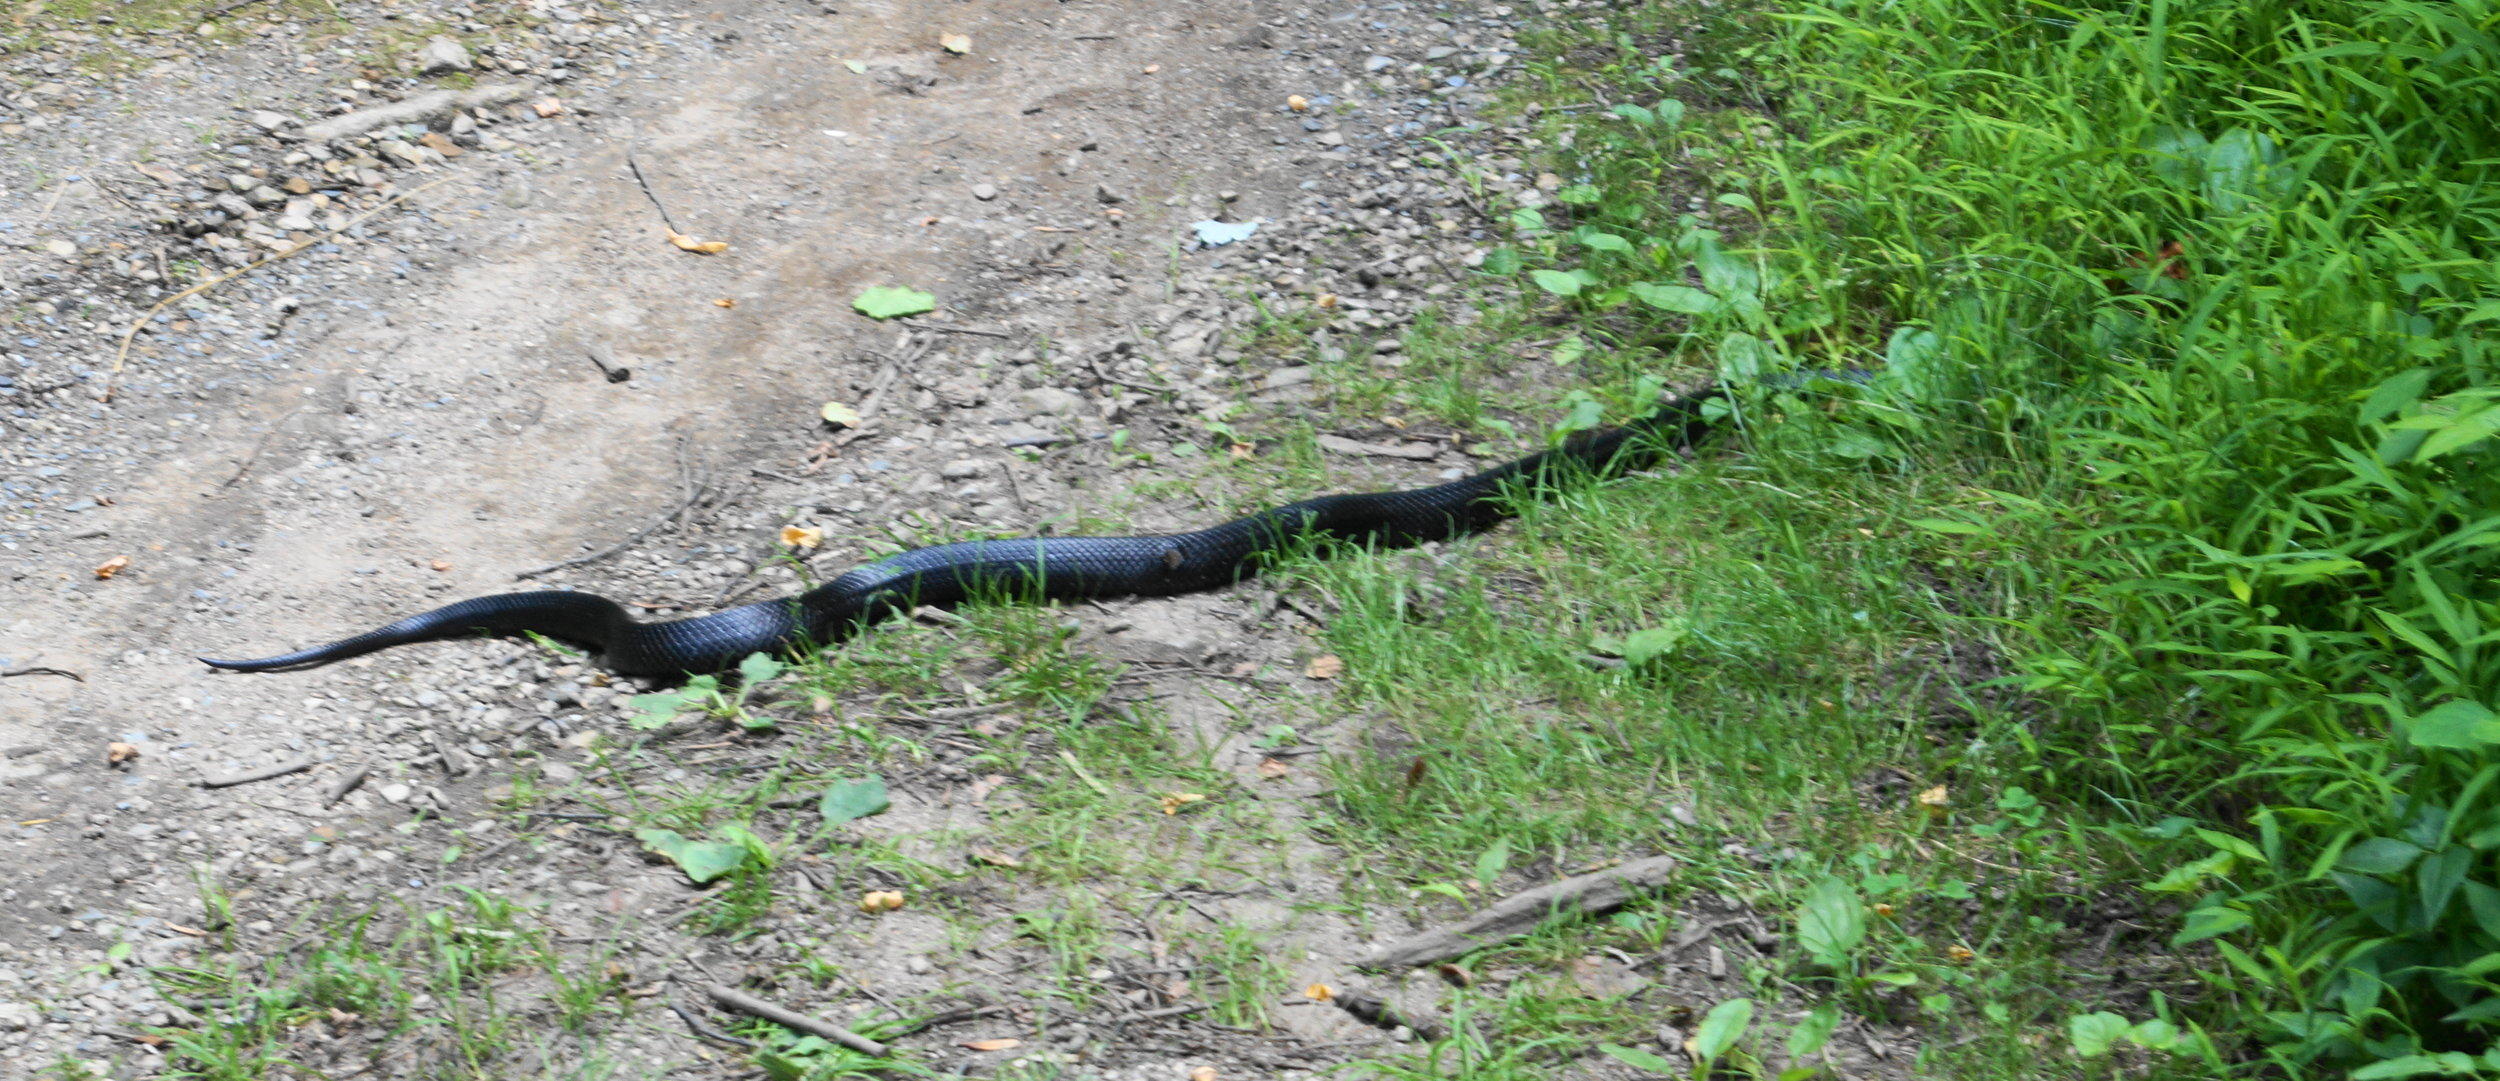 Tom, Jeri and the boys went ahead of us. Diane and myself were greeted by this creature crossing our path.